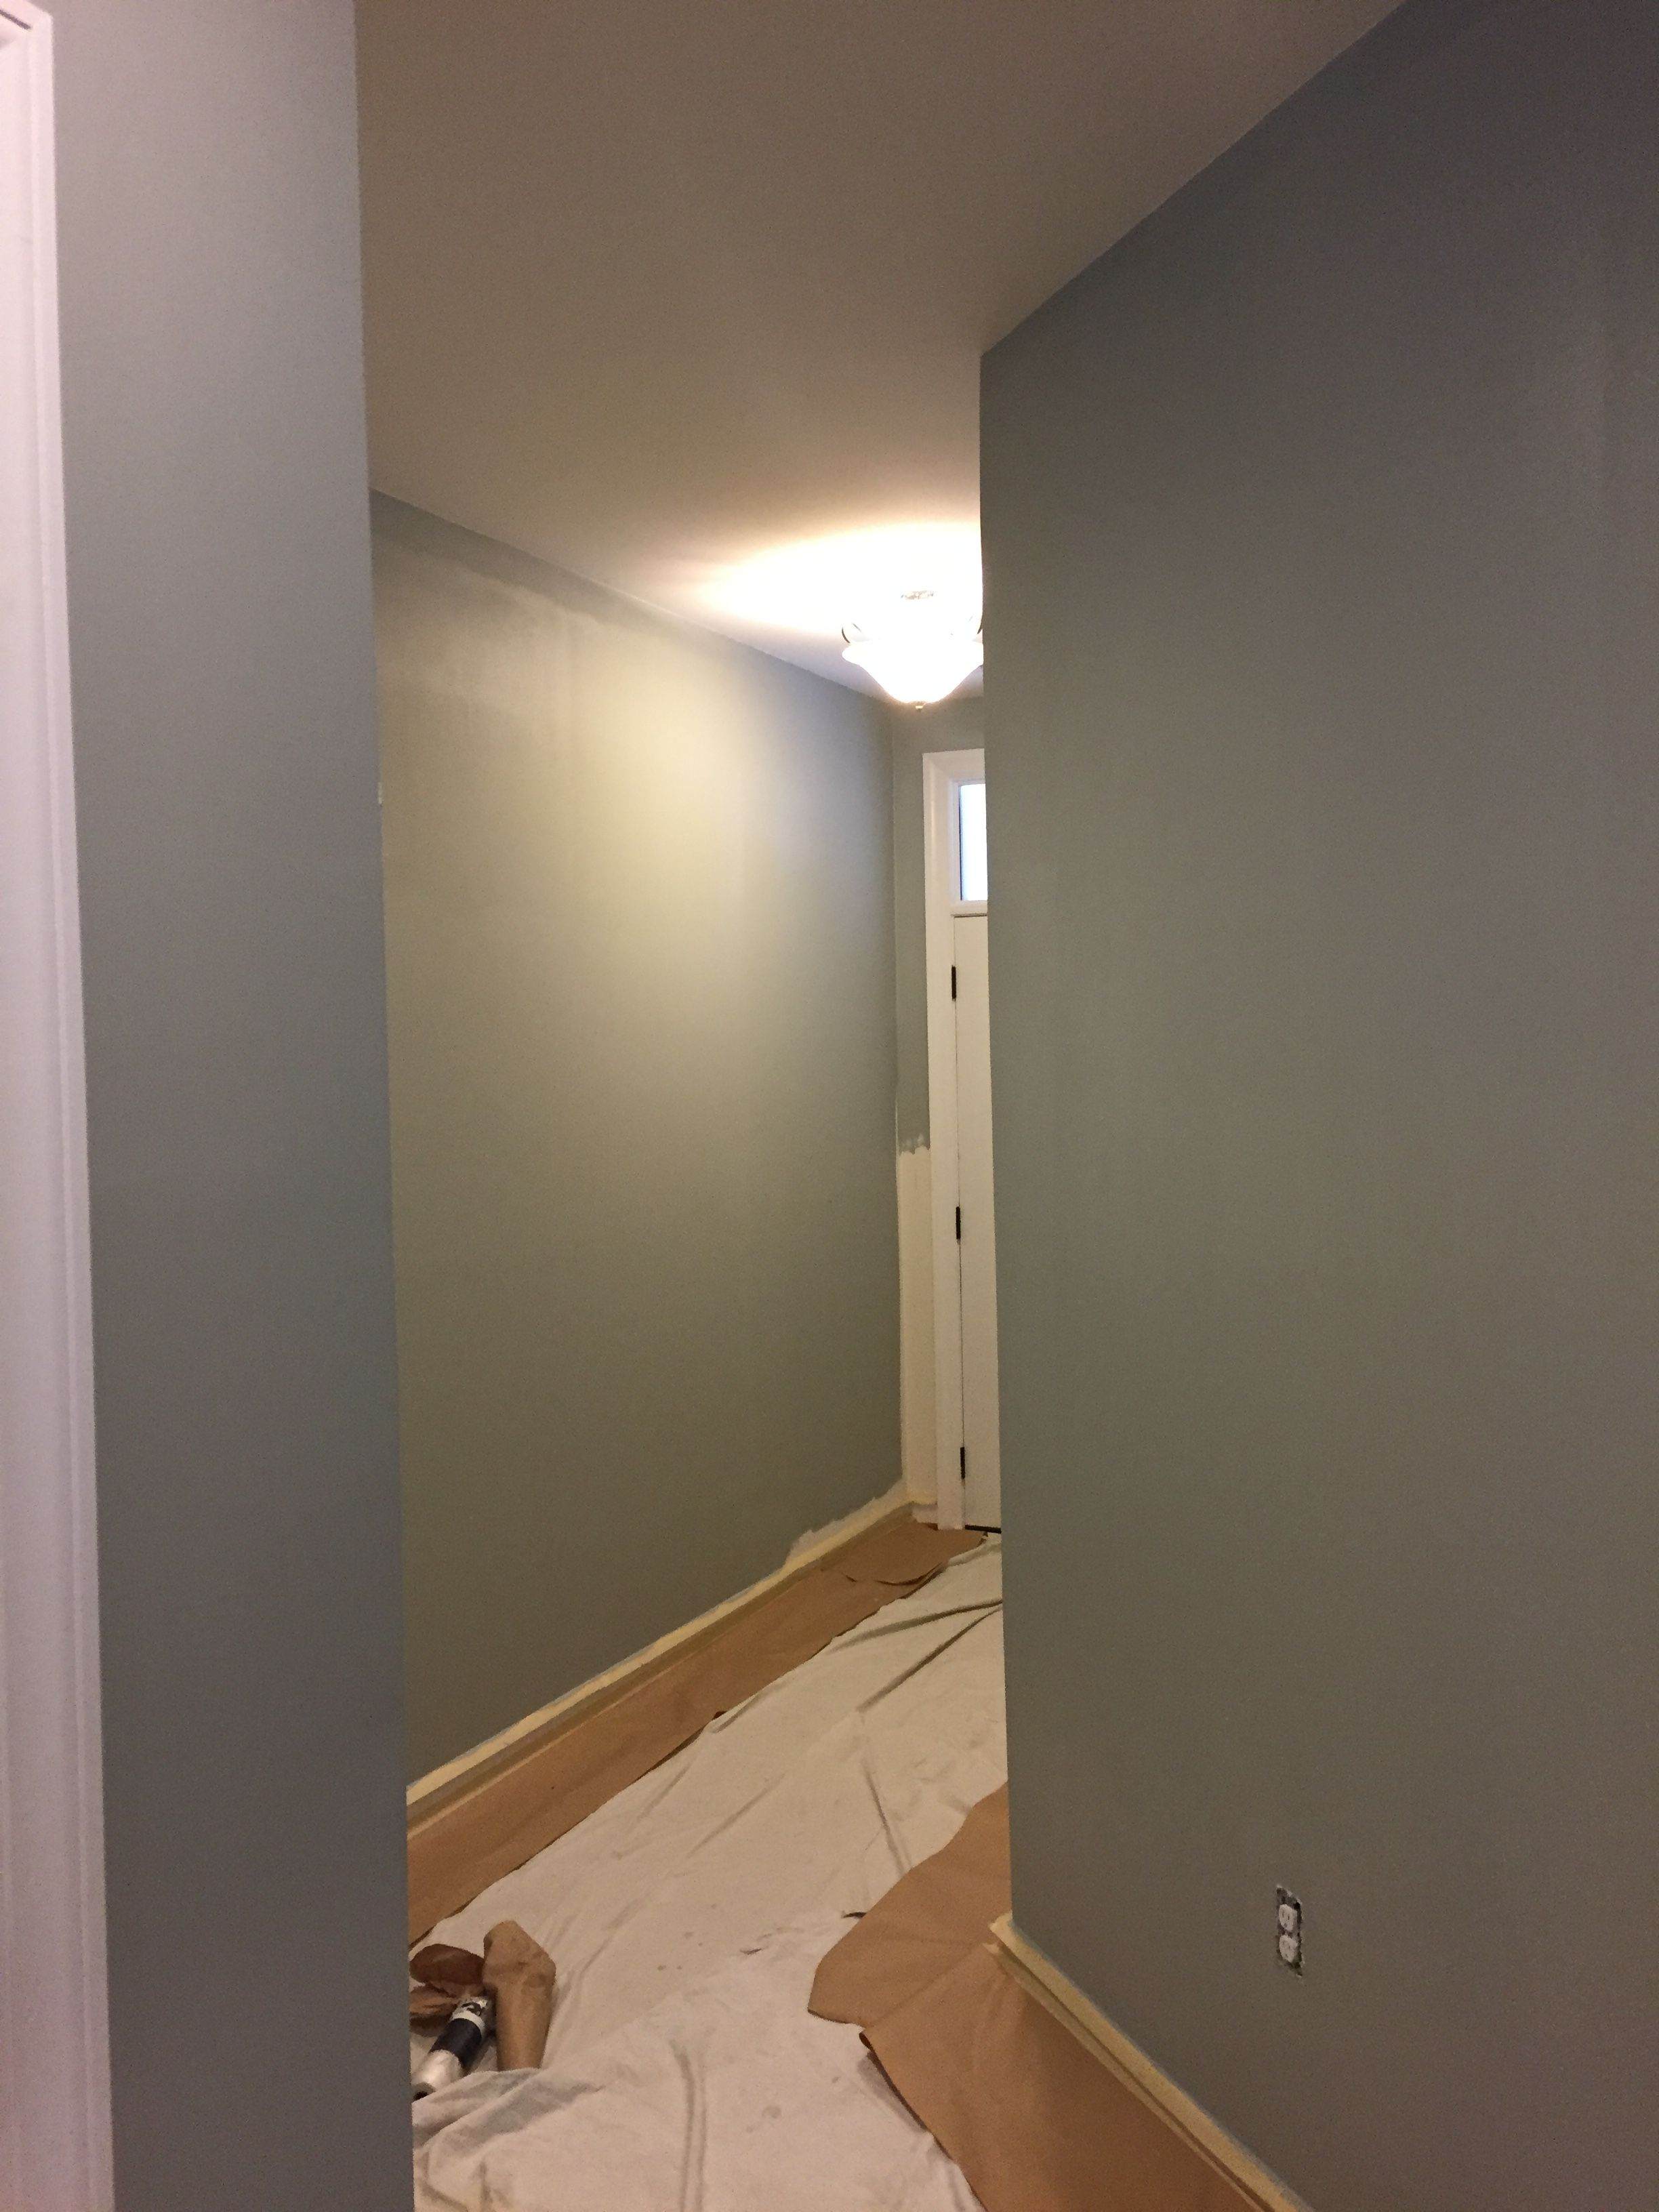 Nursery  Sherwin Williams Magnetic Gray - Model Home Projects